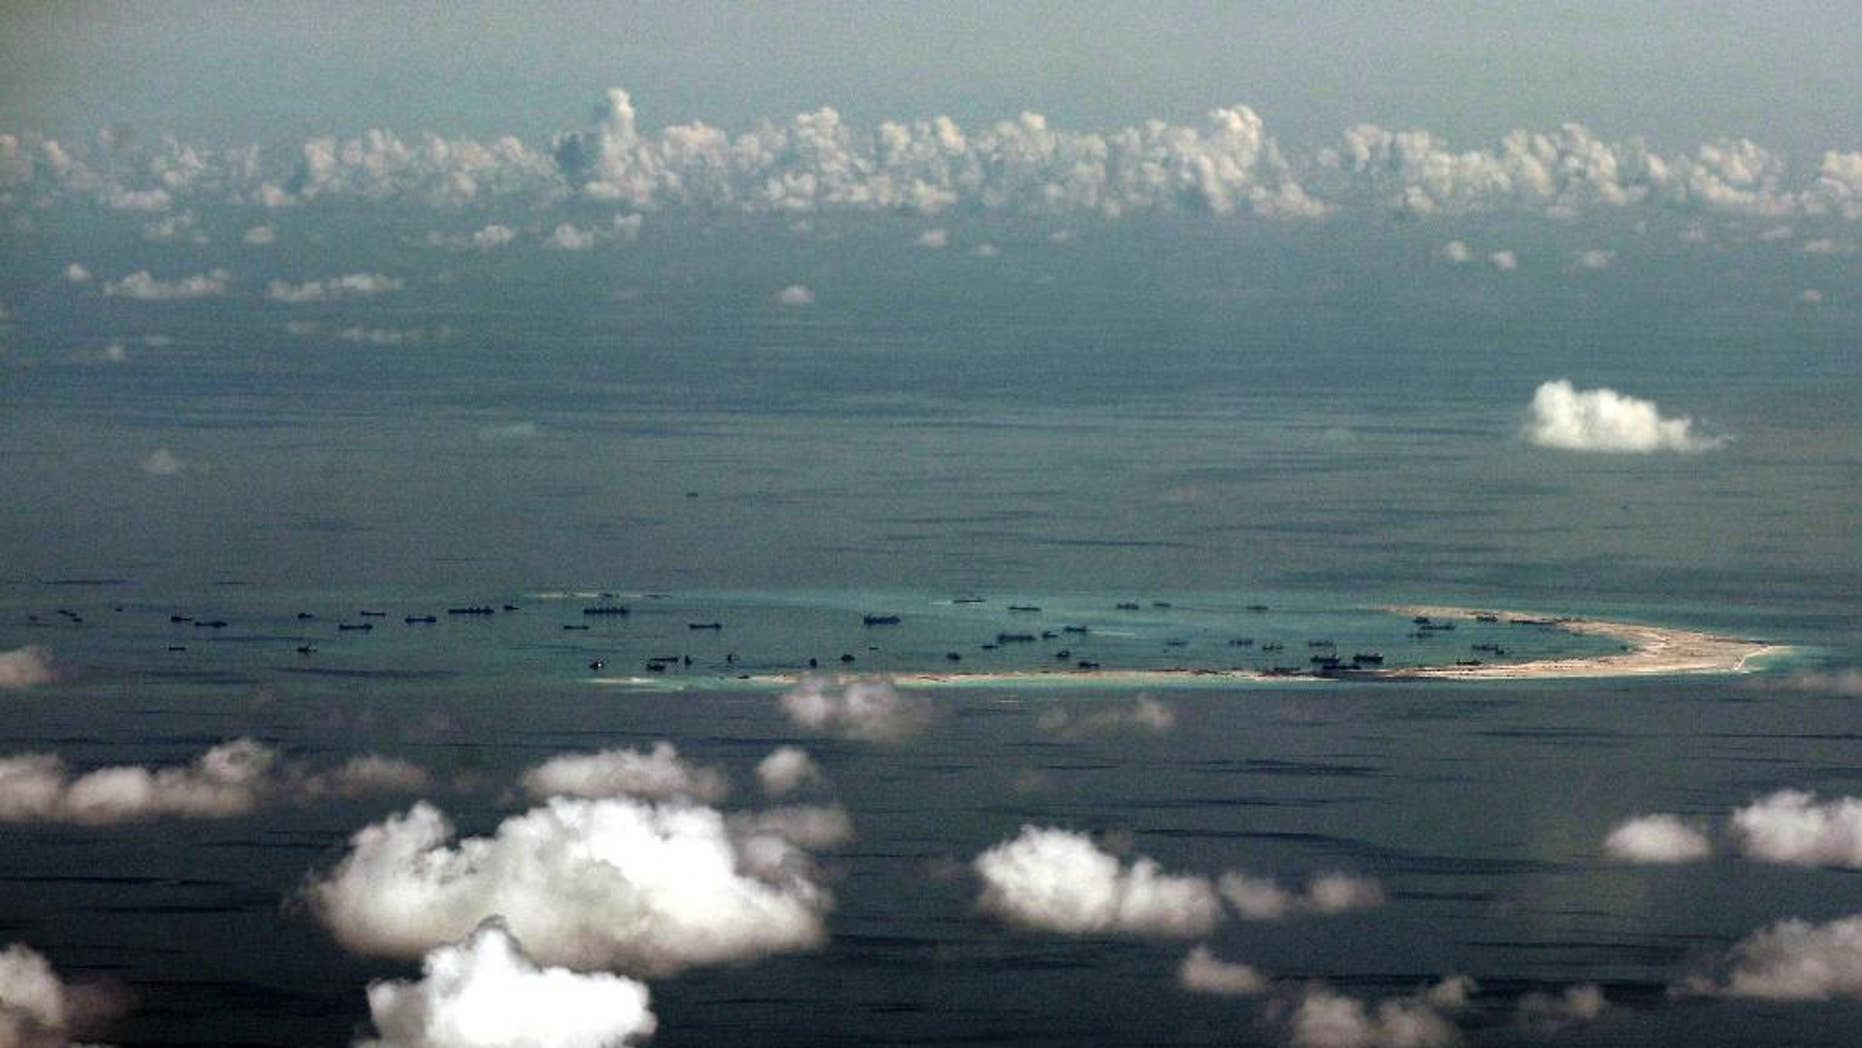 """FILE - In this May 11, 2015, file photo, this aerial photo taken through a glass window of a military plane shows China's alleged on-going reclamation of Mischief Reef in the Spratly Islands in the South China Sea. China will complete land reclamation projects on its disputed South China Sea territorial claims as planned within """"upcoming days,"""" the Foreign Ministry said Tuesday, June 16, 2015. (Ritchie B. Tongo/Pool Photo via AP)"""